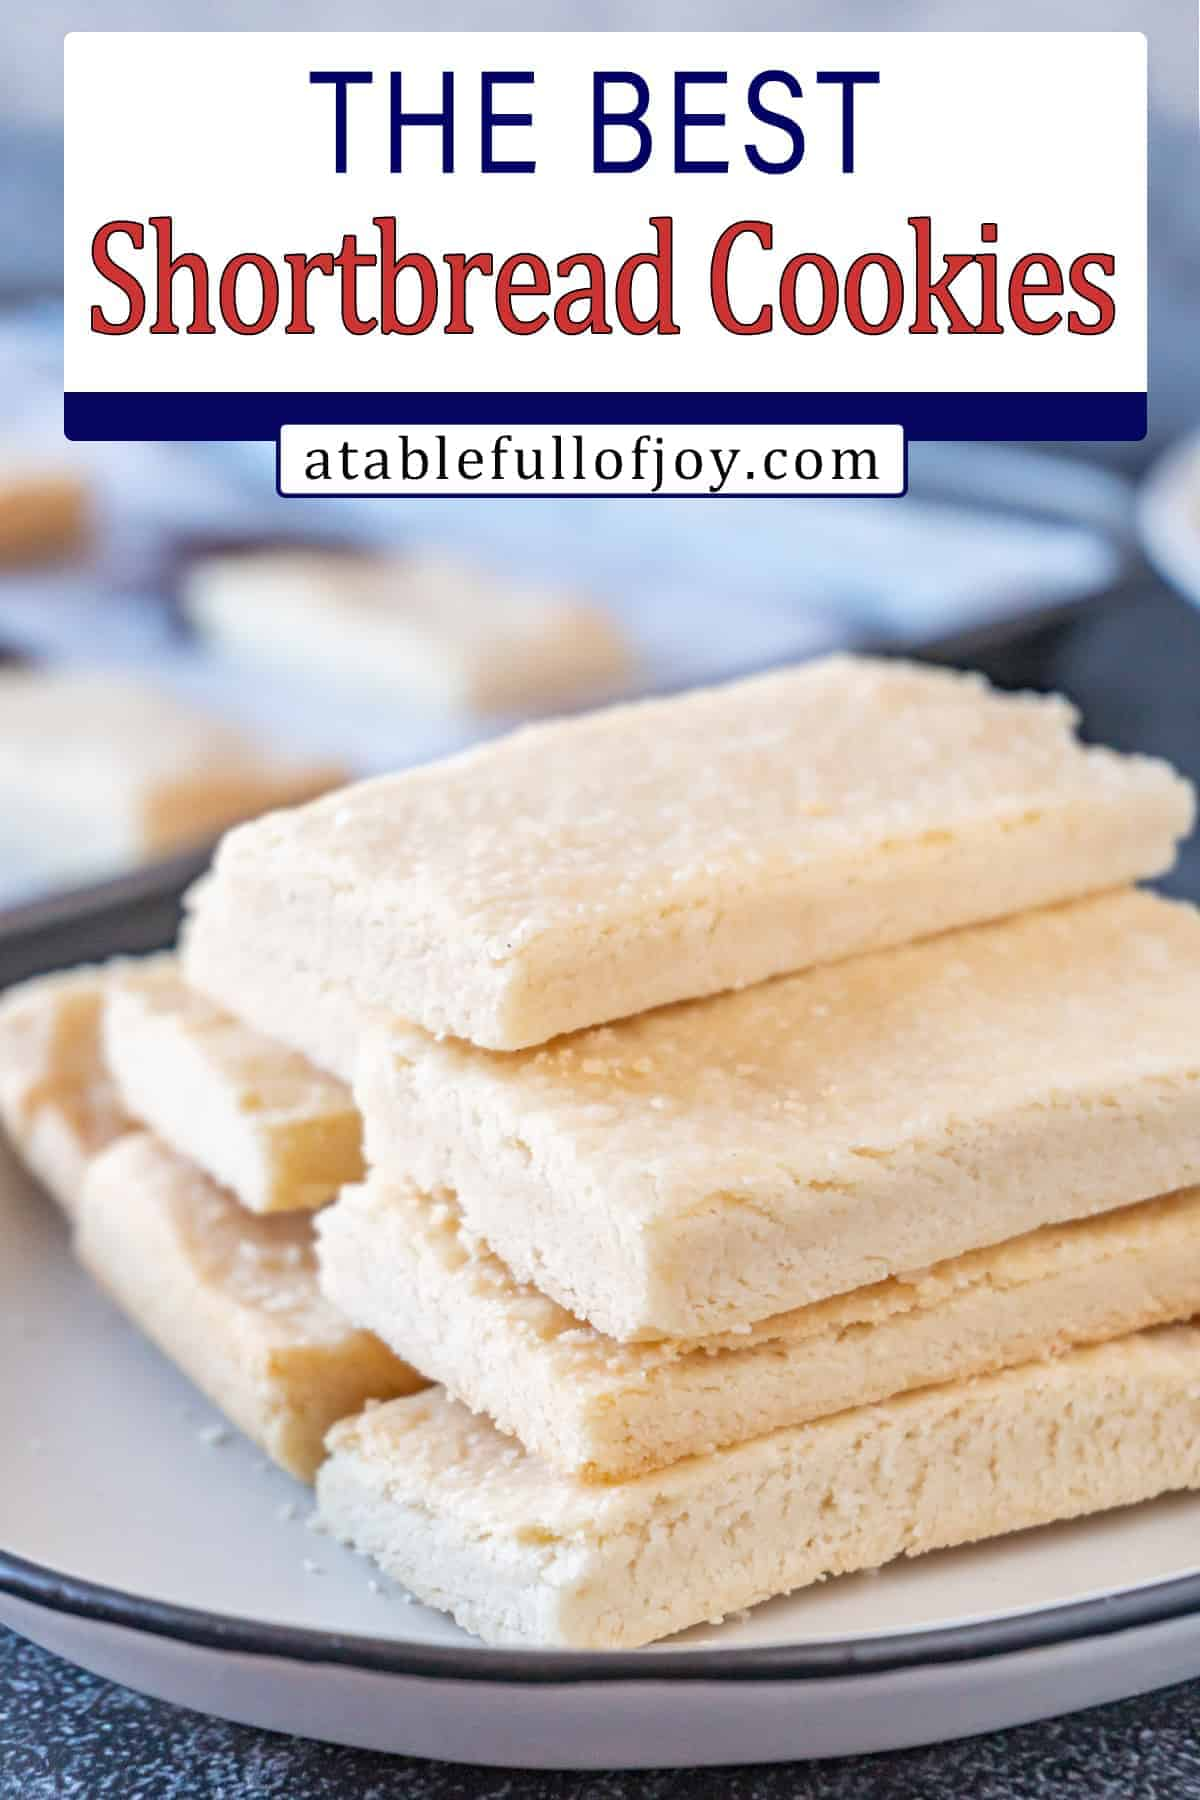 Shortbread cookies stacked on plate pinterest pin